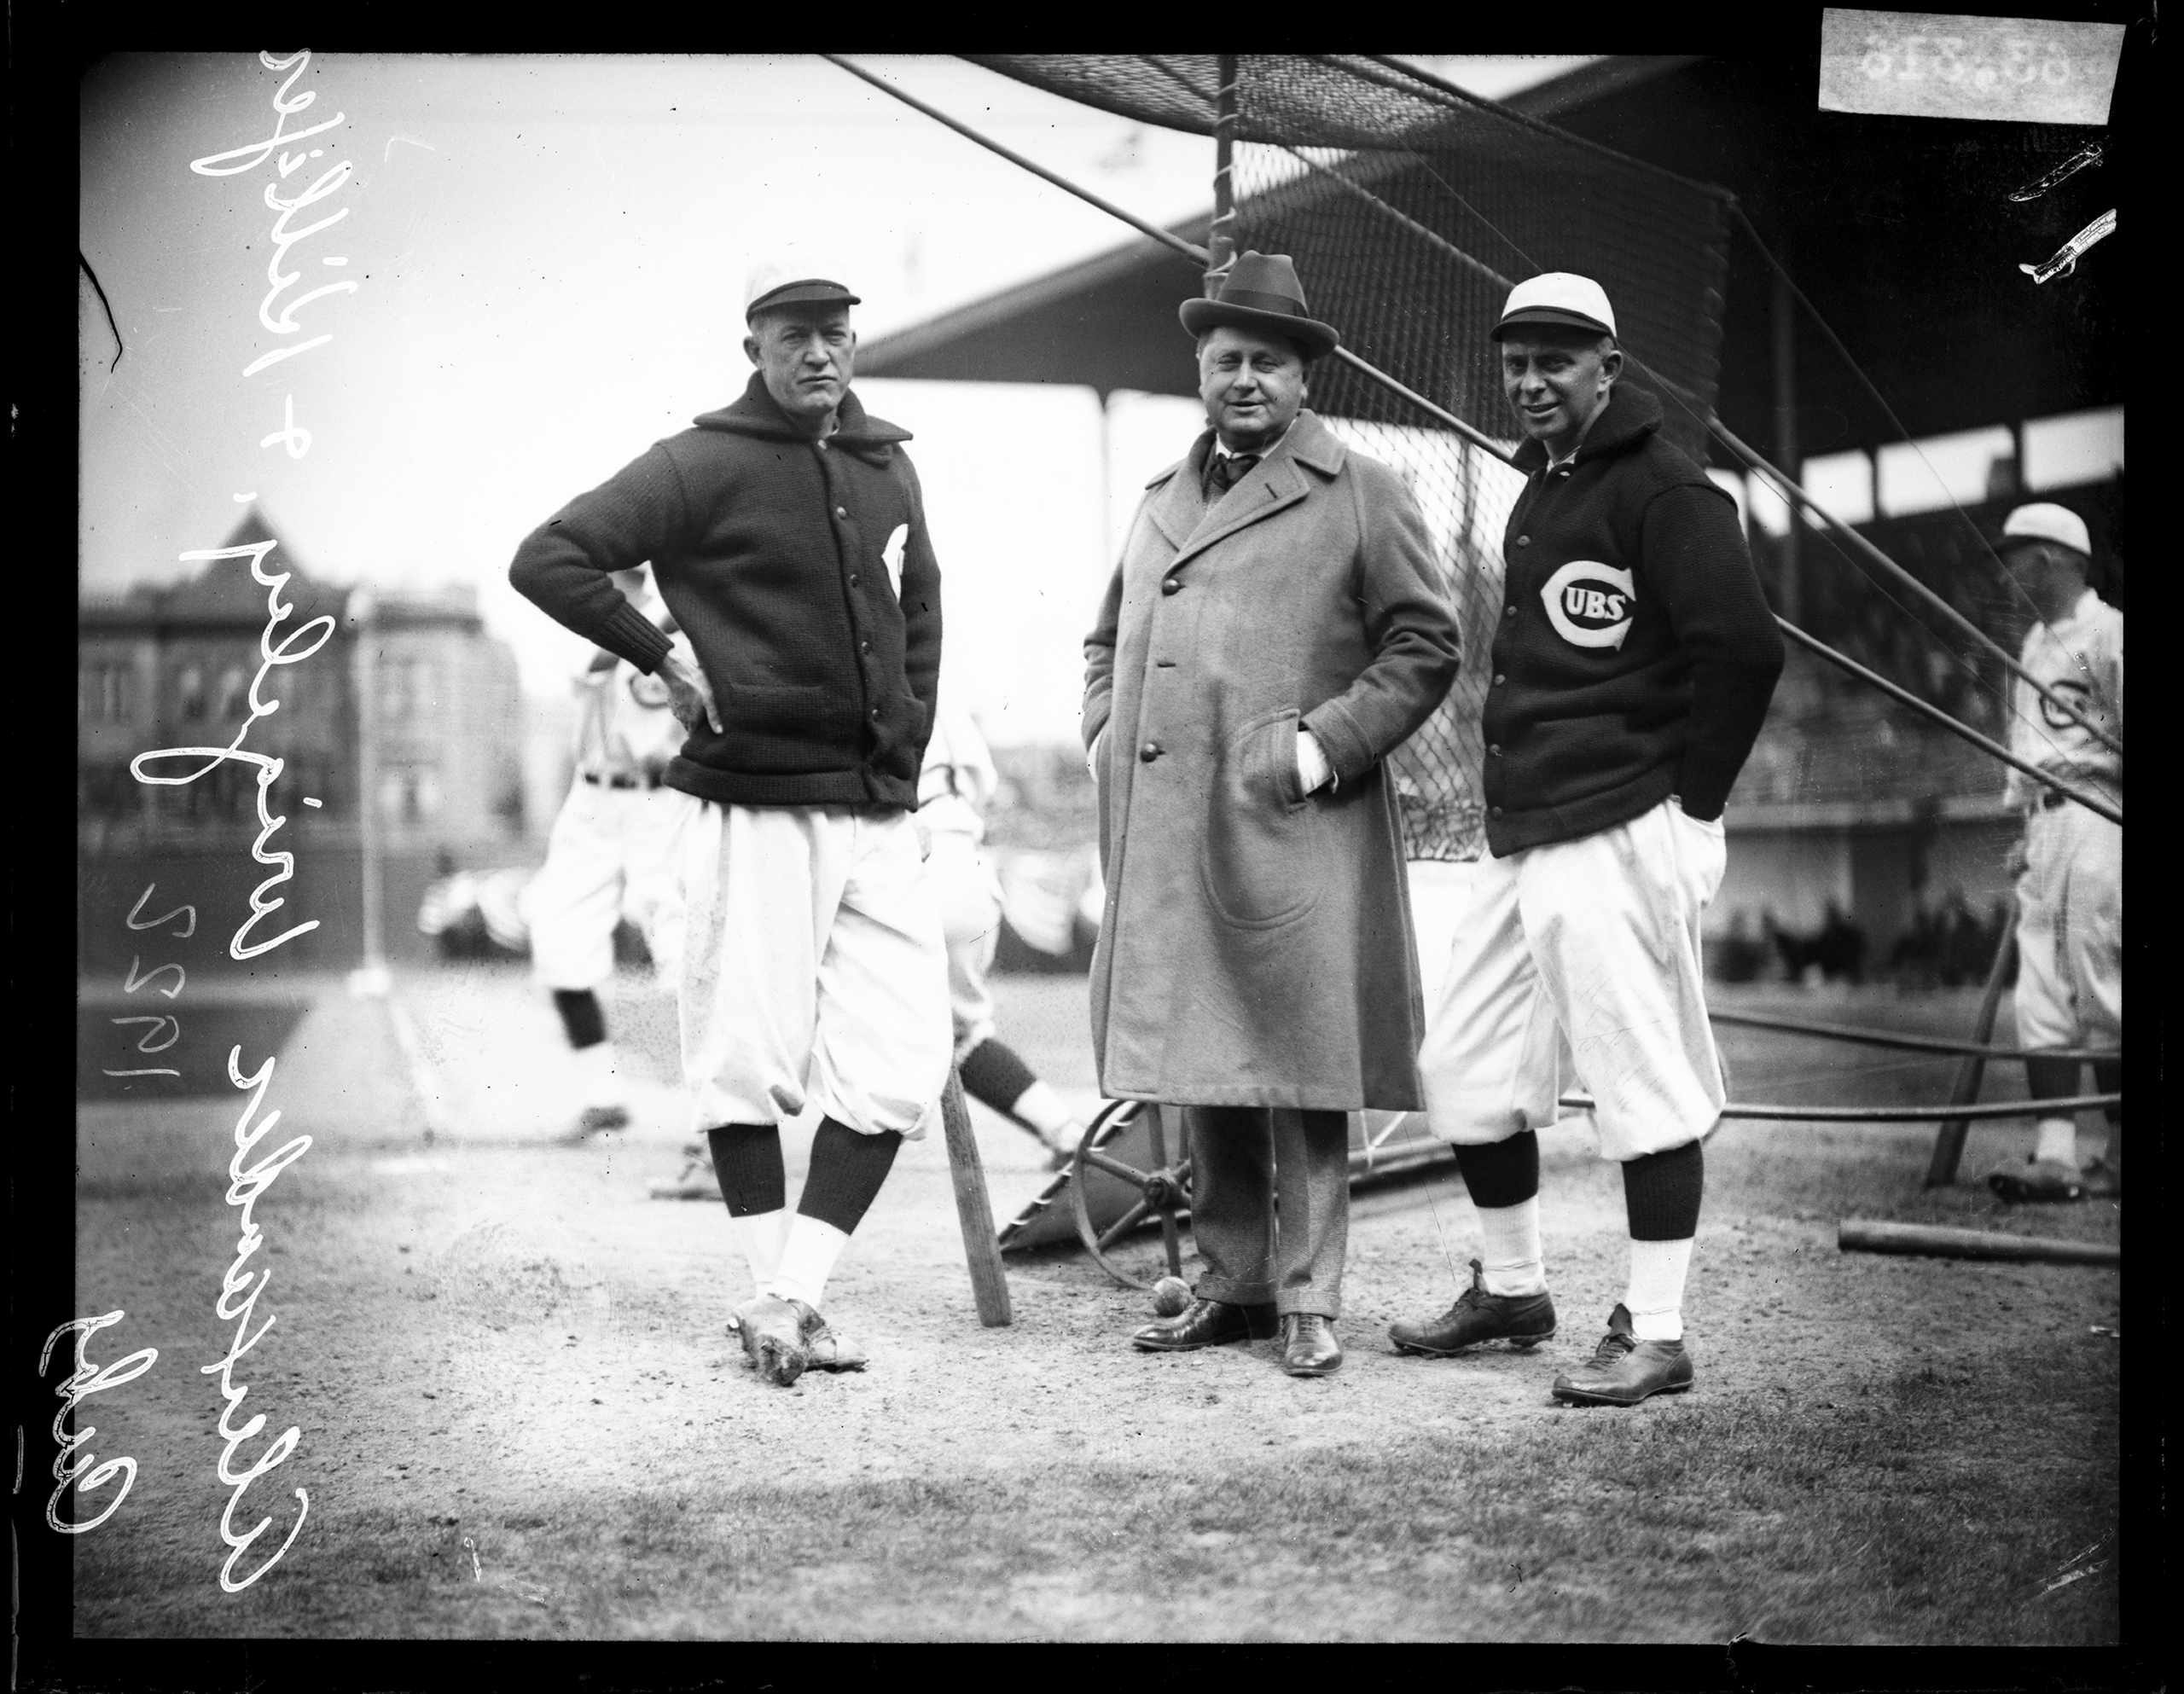 Left to right: Chicago Cubs baseball player Alexander, co-owner William Wrigley Jr, and manager Bill Killefer standing behind a batting practice backstop on the field at Weeghman Park, located at 1060 West Addison Street, Chicago, 1922.